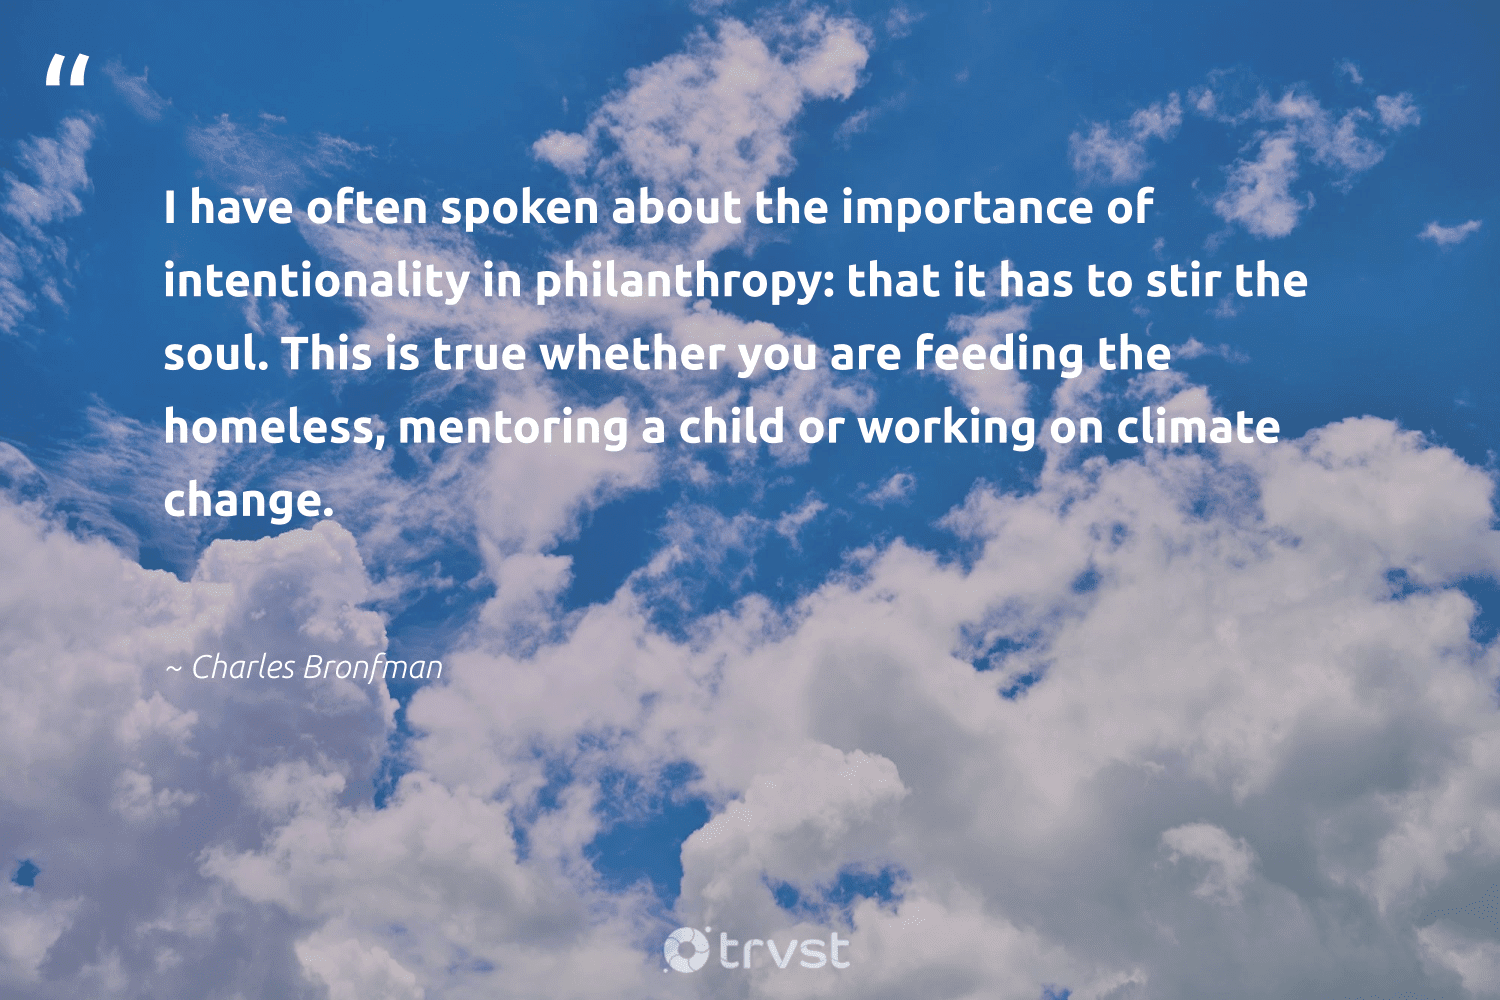 """""""I have often spoken about the importance of intentionality in philanthropy: that it has to stir the soul. This is true whether you are feeding the homeless, mentoring a child or working on climate change.""""  - Charles Bronfman #trvst #quotes #climatechange #climate #homeless #mentoring #climateaction #climatechangeisreal #giveforthefuture #actonclimate #impact #co2"""